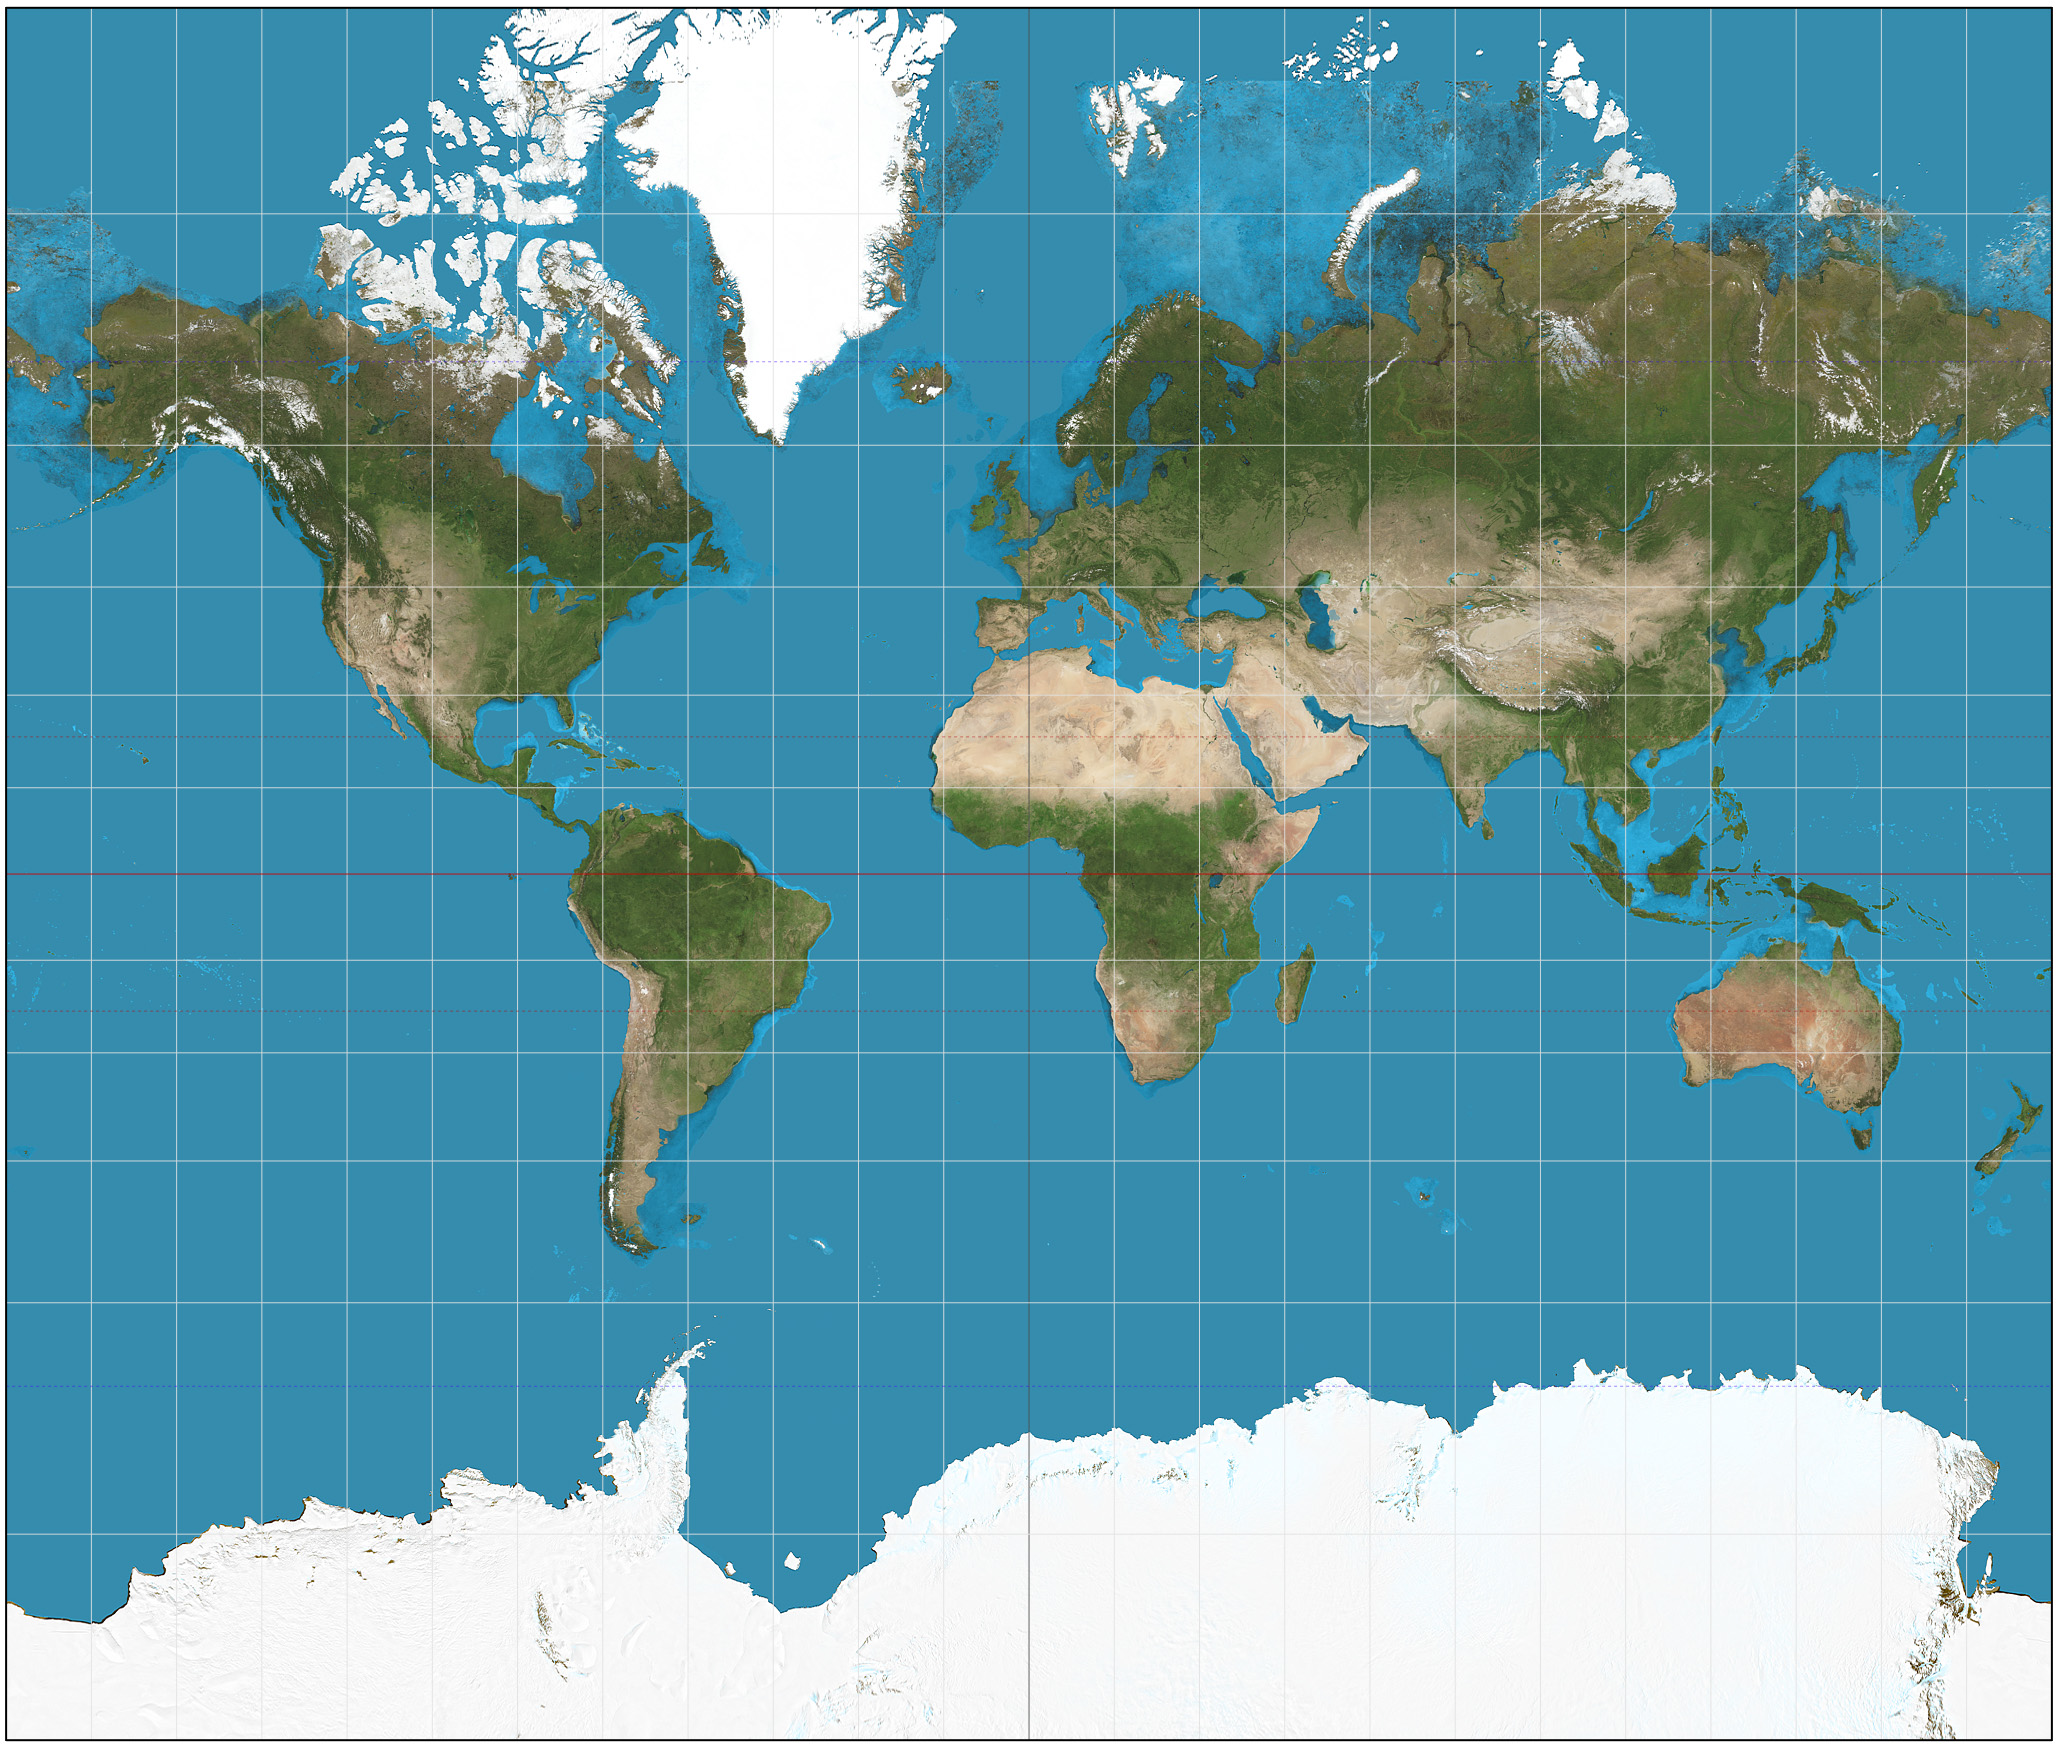 Mercator projection wikipedia mercator projection of the world between 82s and 82n gumiabroncs Image collections